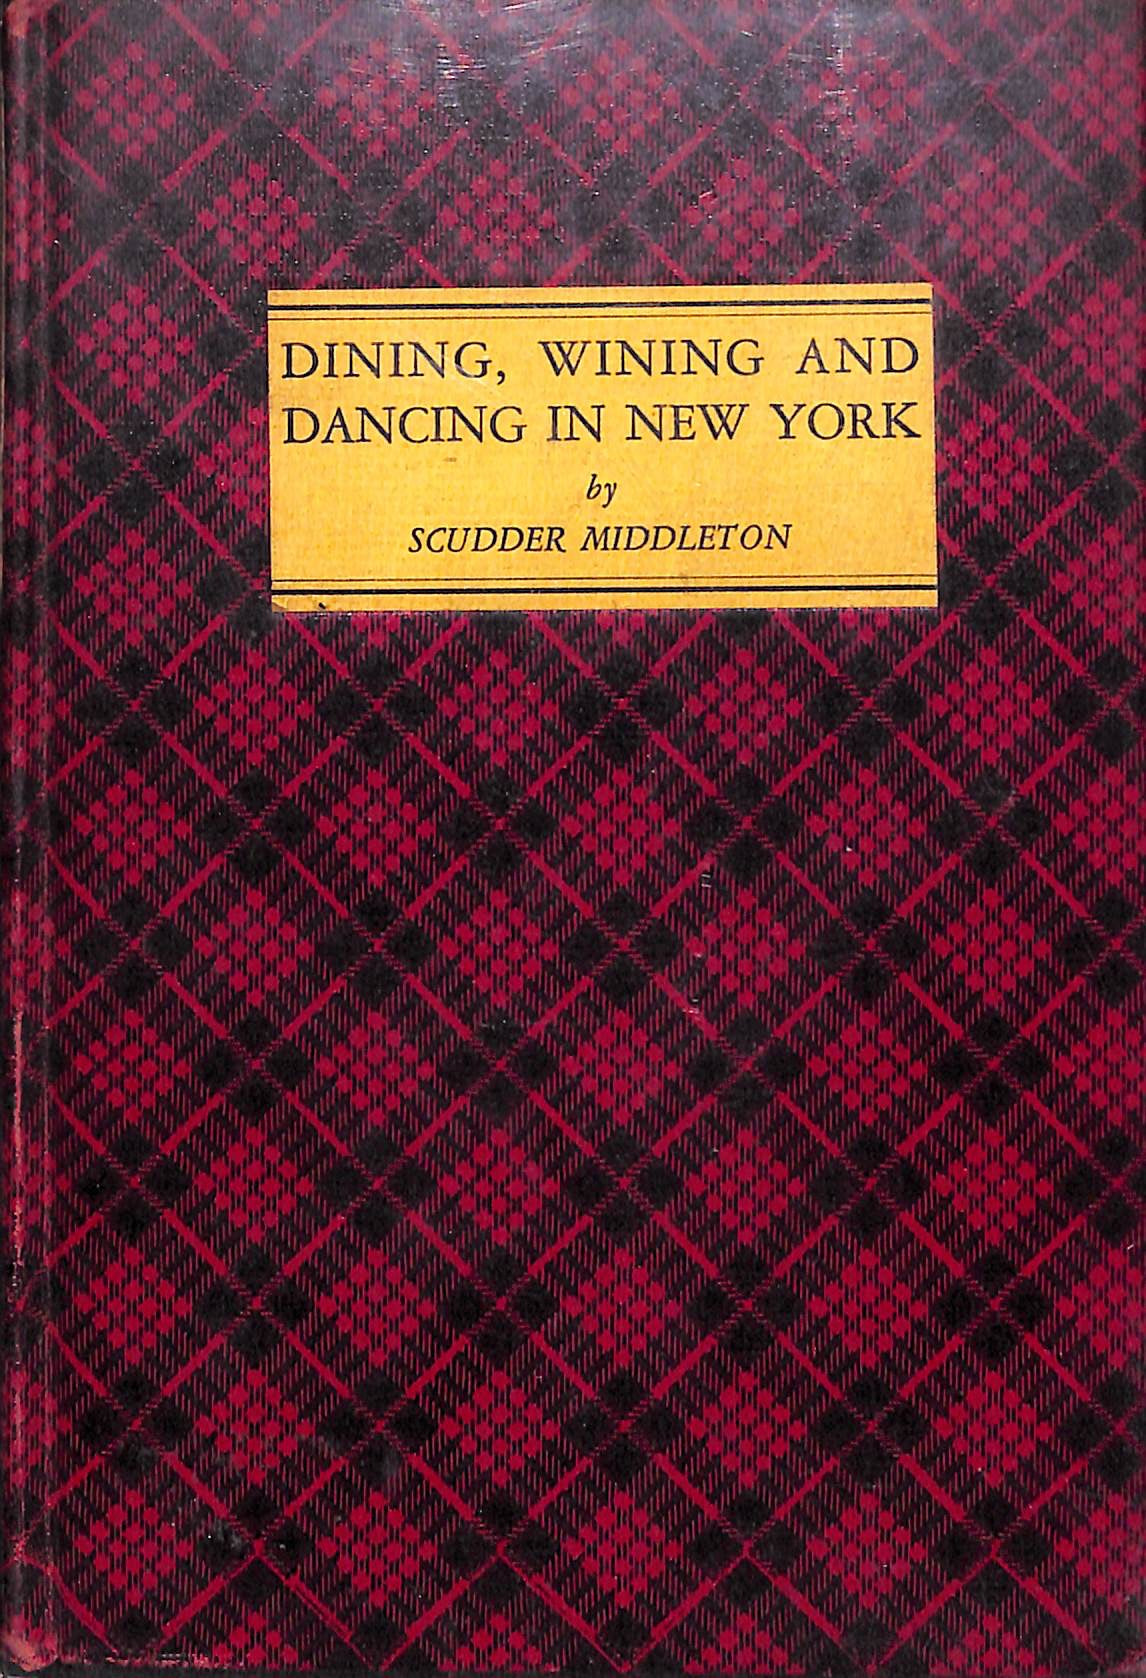 """Dining Wining and Dancing In New York"" 1938 by Scudder Middleton"